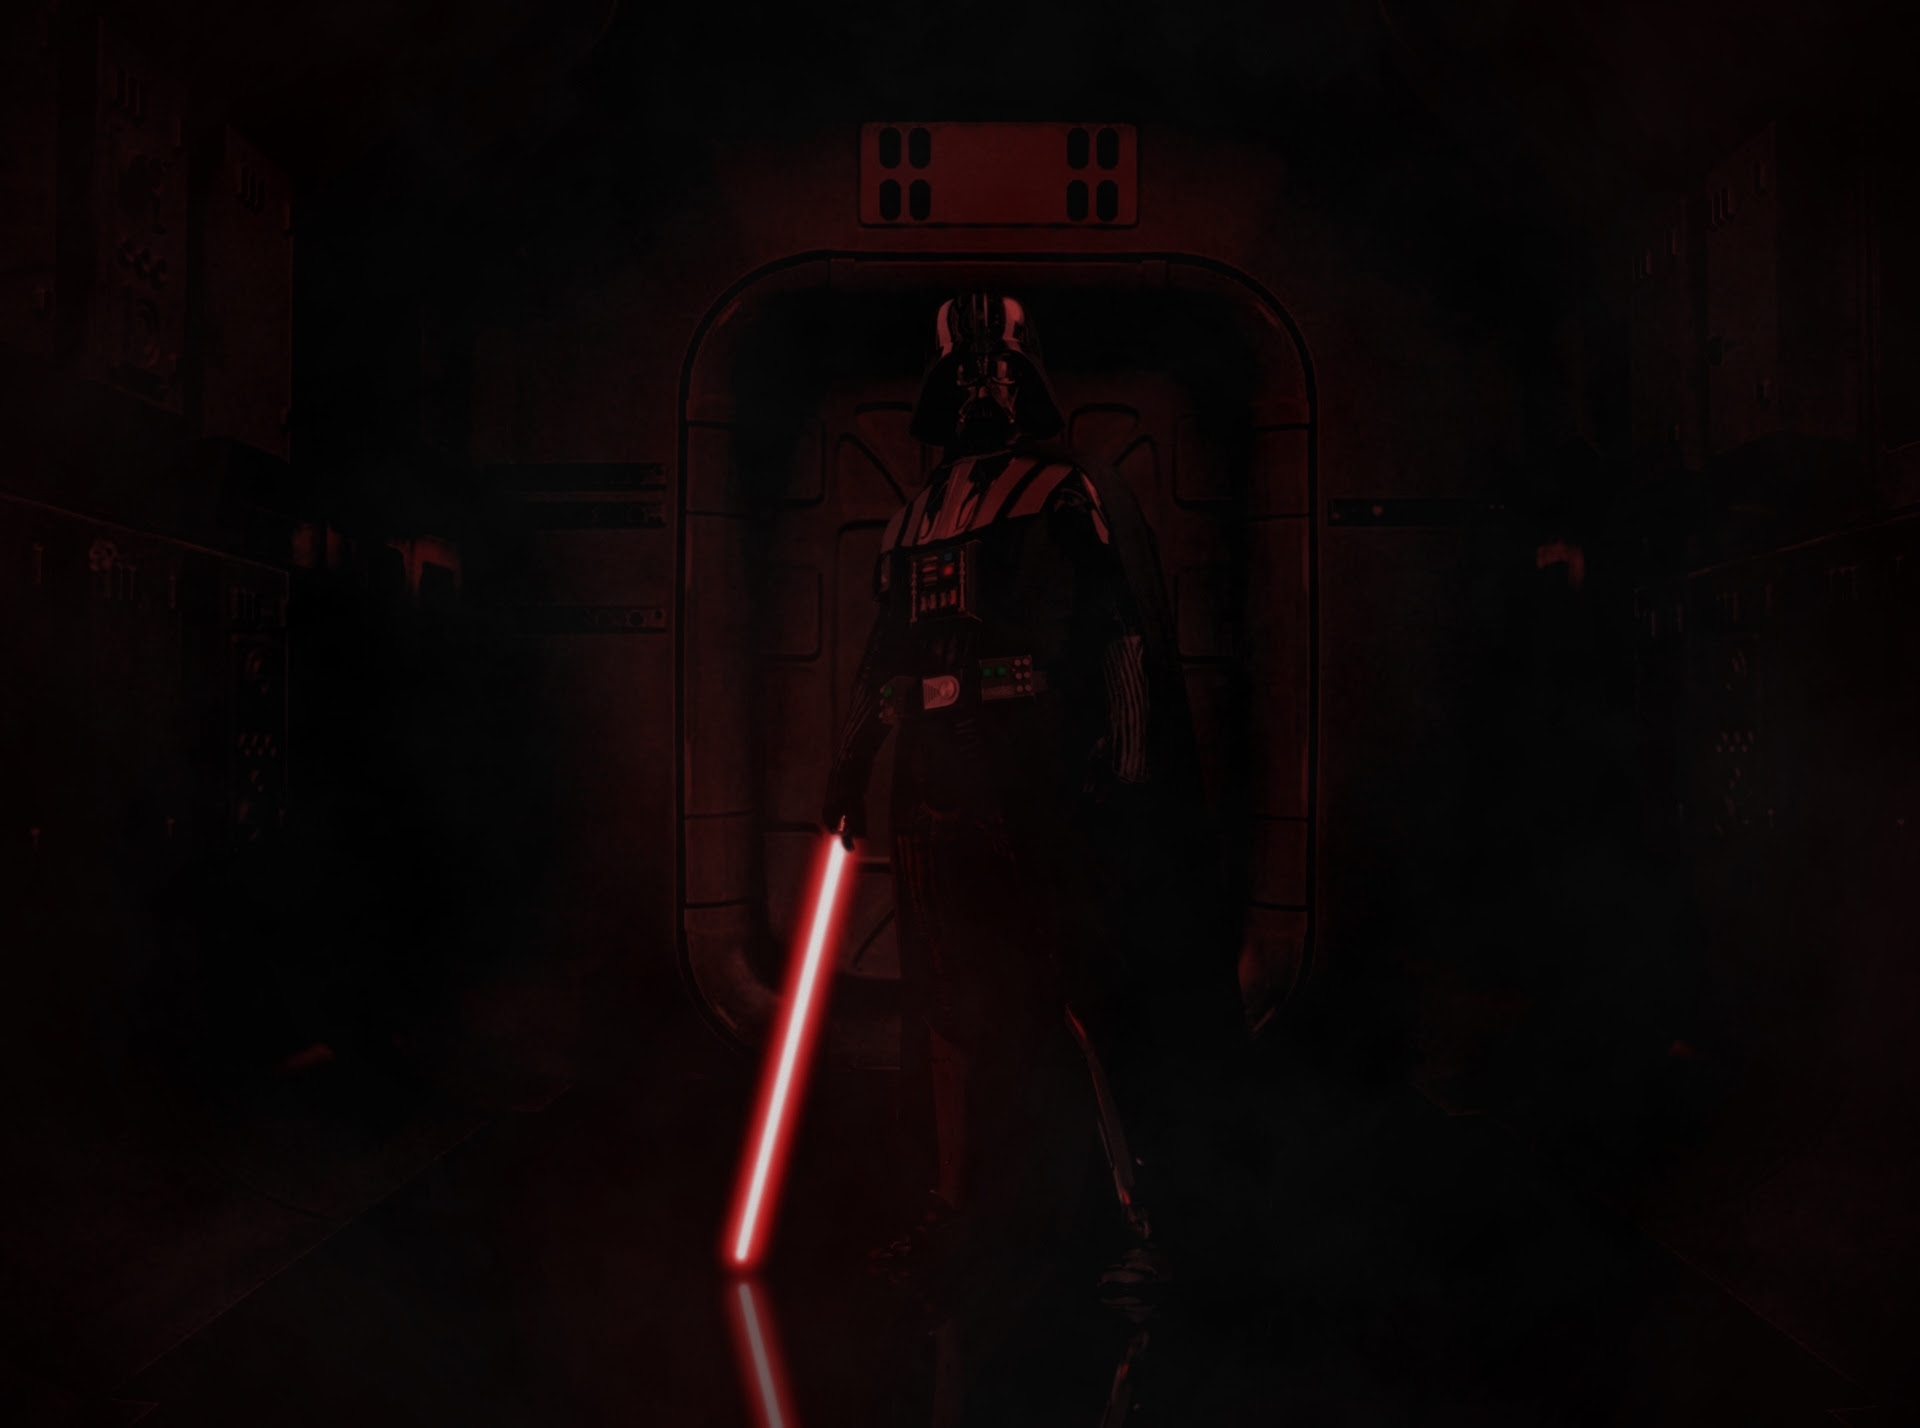 Darth Vader From Rogue One Rogue One Spoilers Art Media